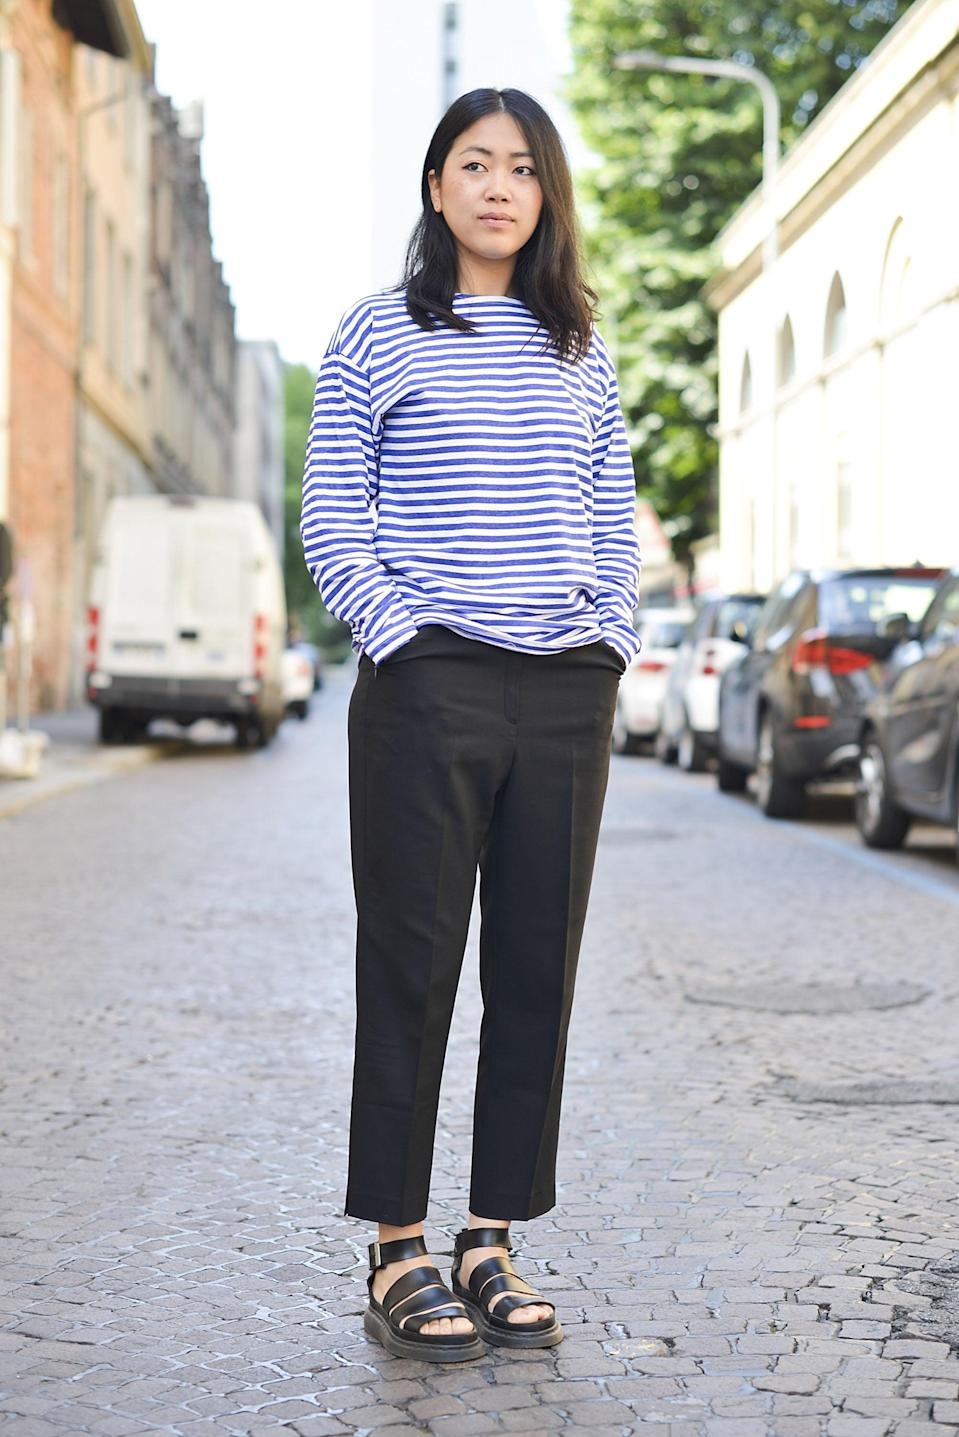 <p>When casual separates come together for a perfectly complete outfit.</p>